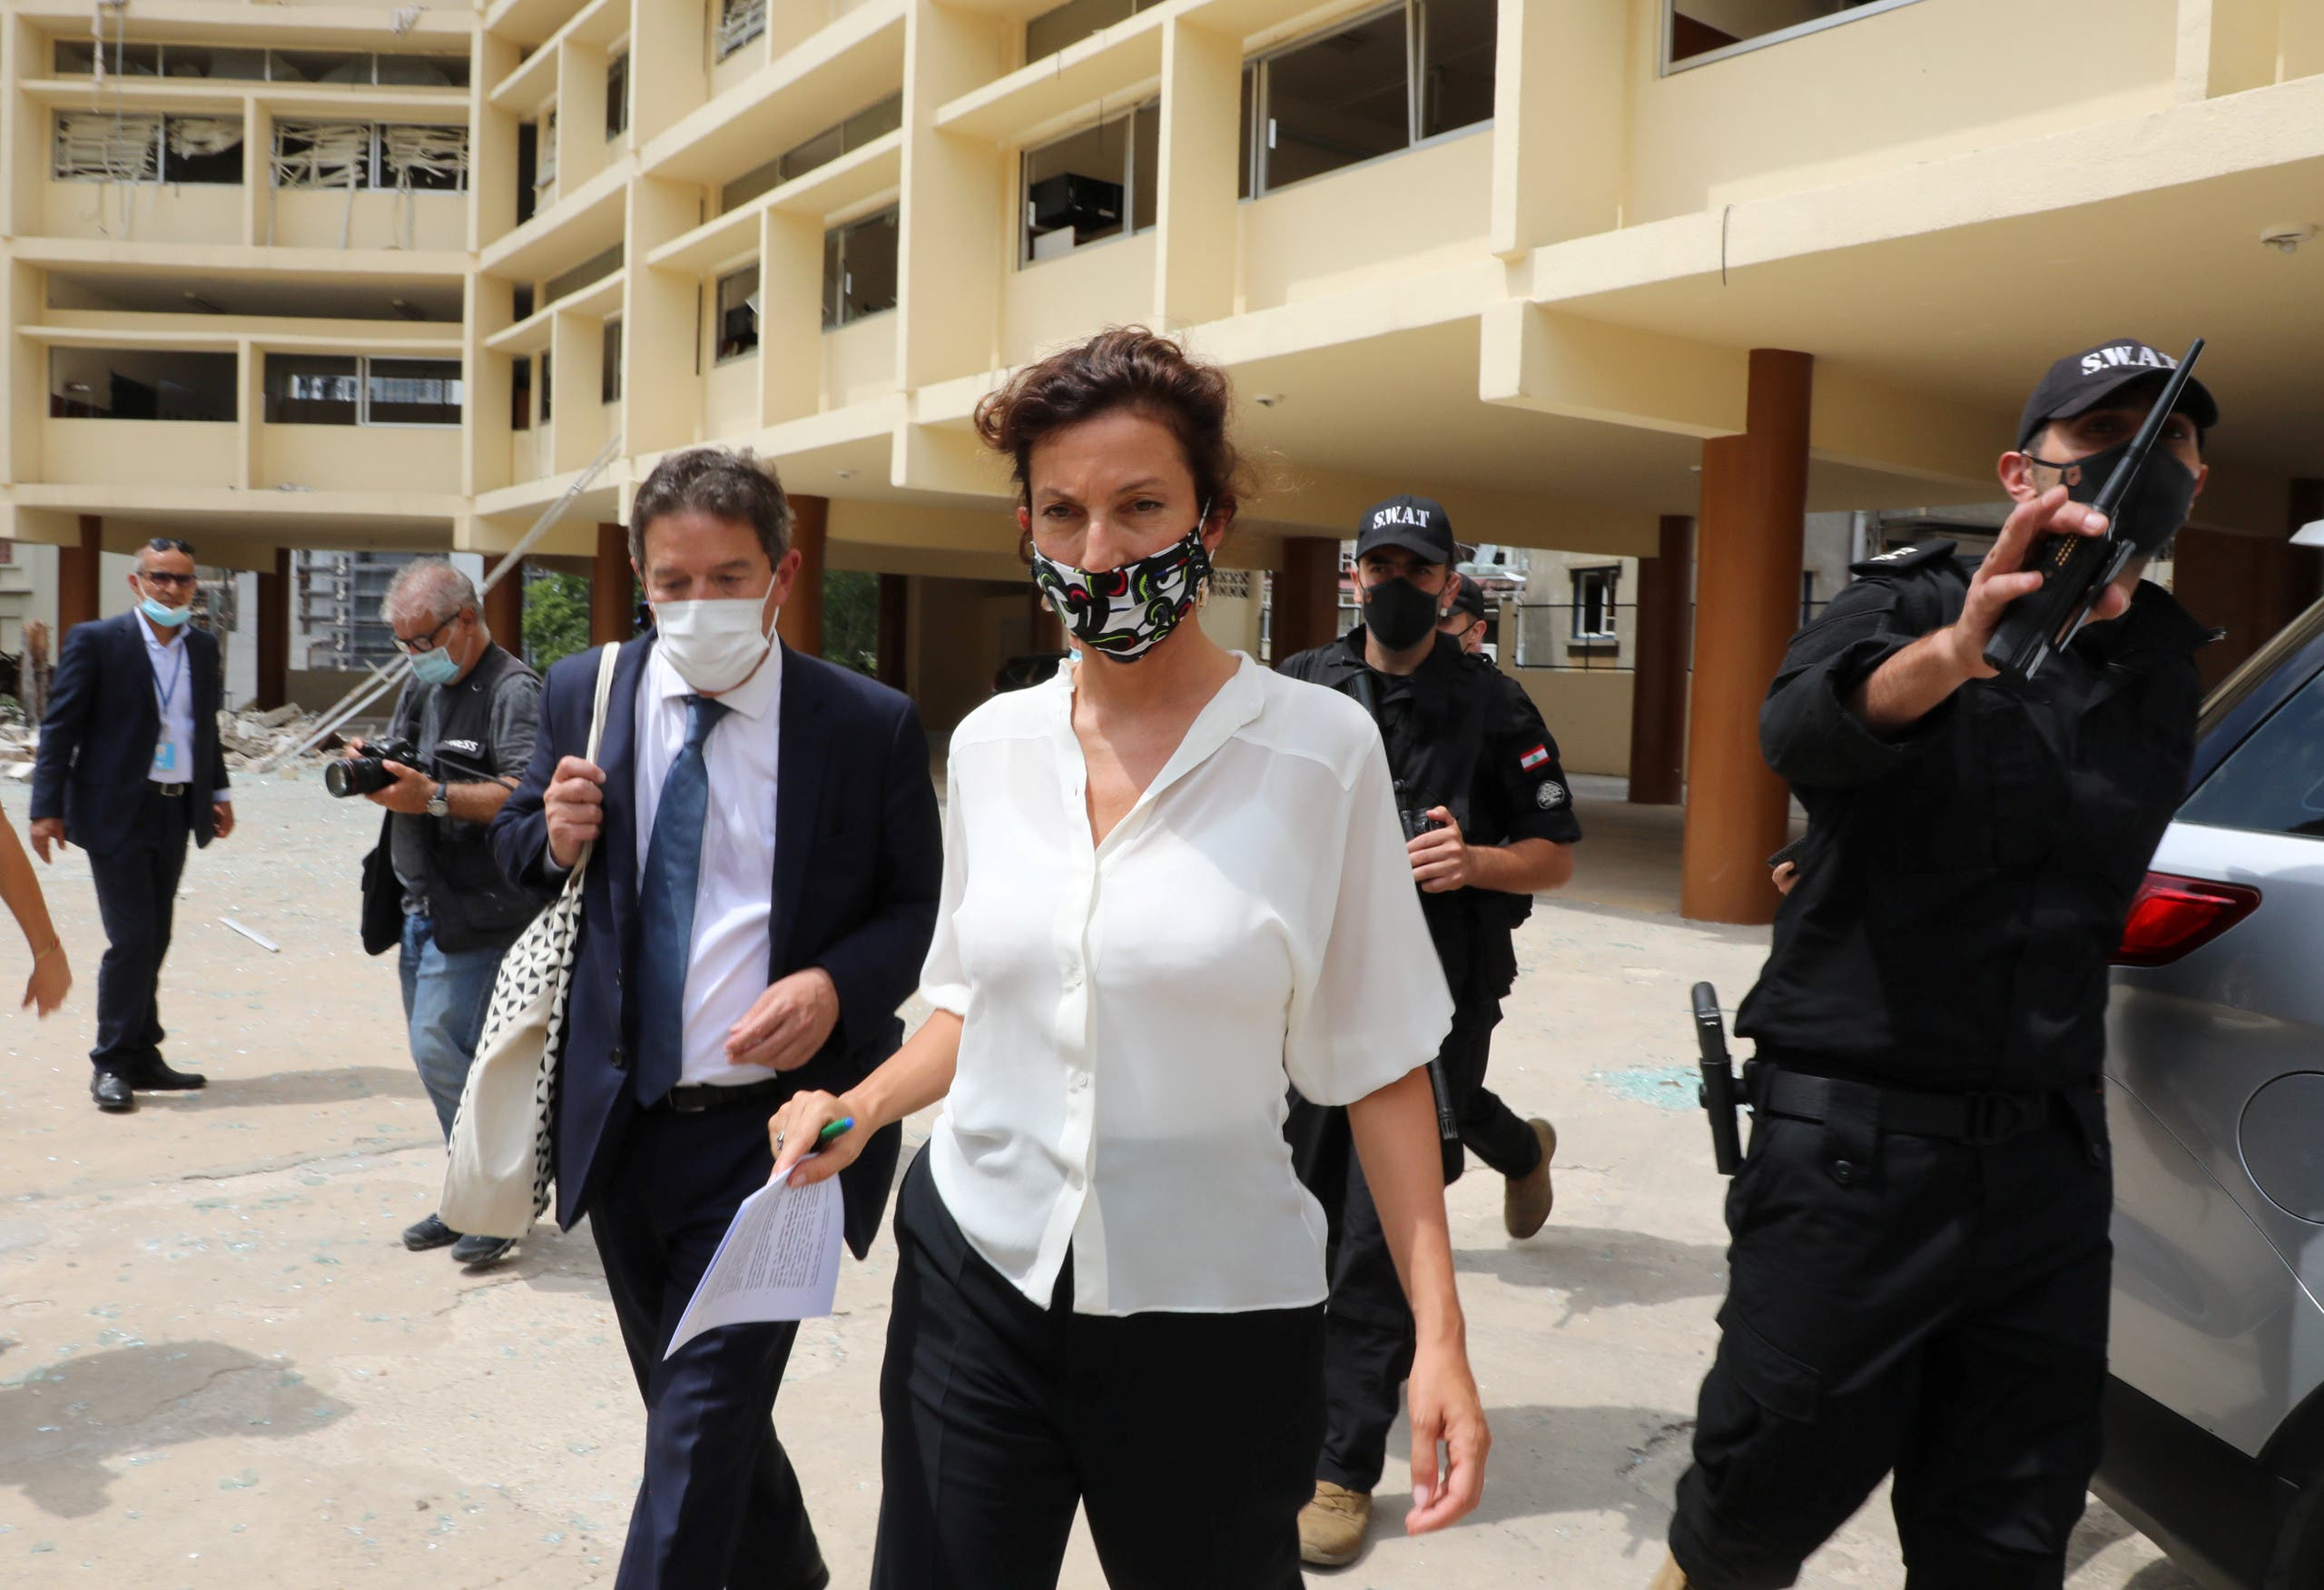 UNESCO Director-General Audrey Azoulay walks at a public school damaged in the massive explosion at Beirut's port area, in Beirut, Lebanon August 27, 2020. (Reuters)